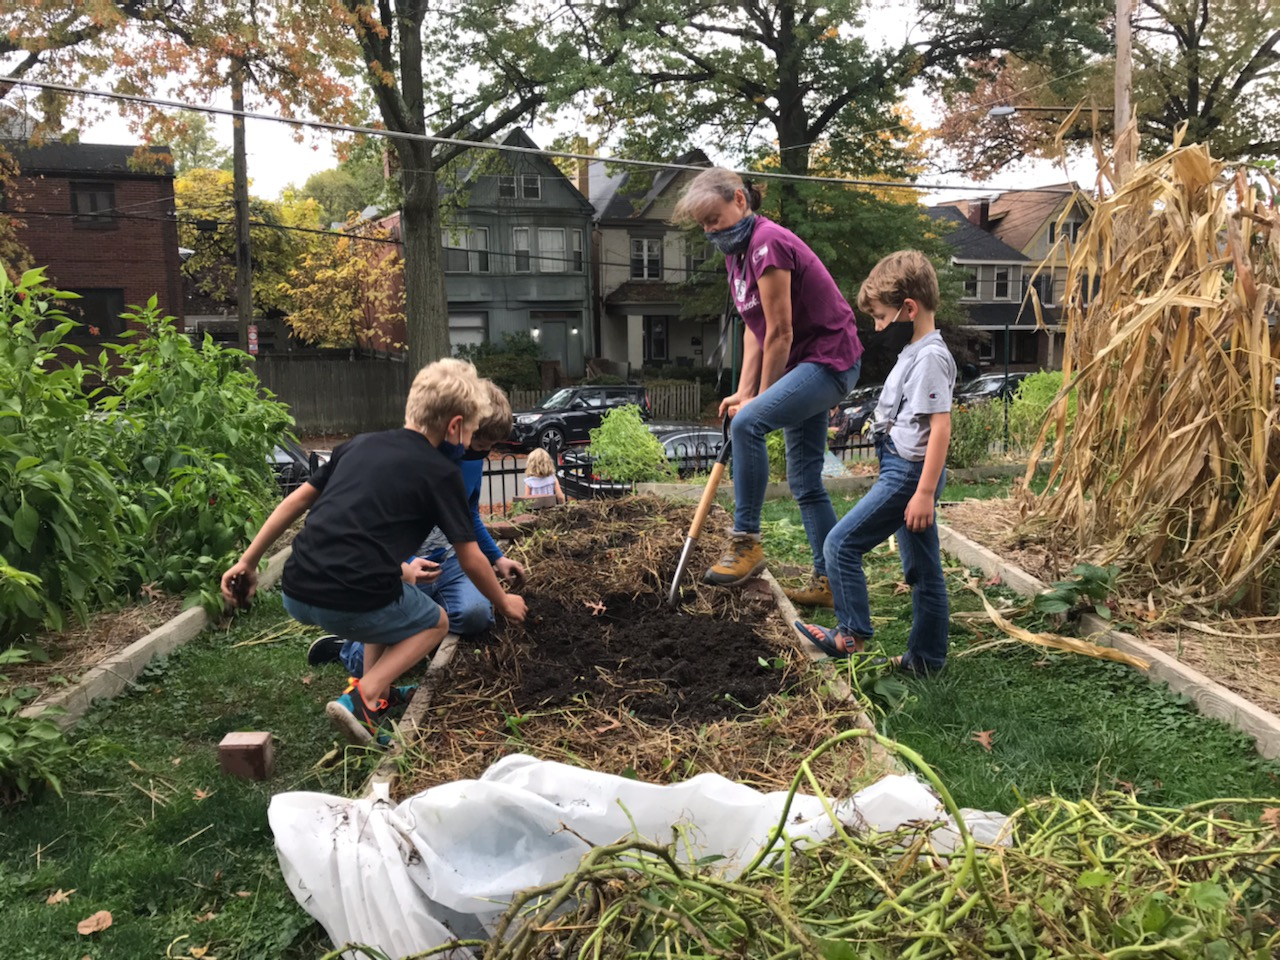 School Gardens: A Place of Shared Knowledge & Care